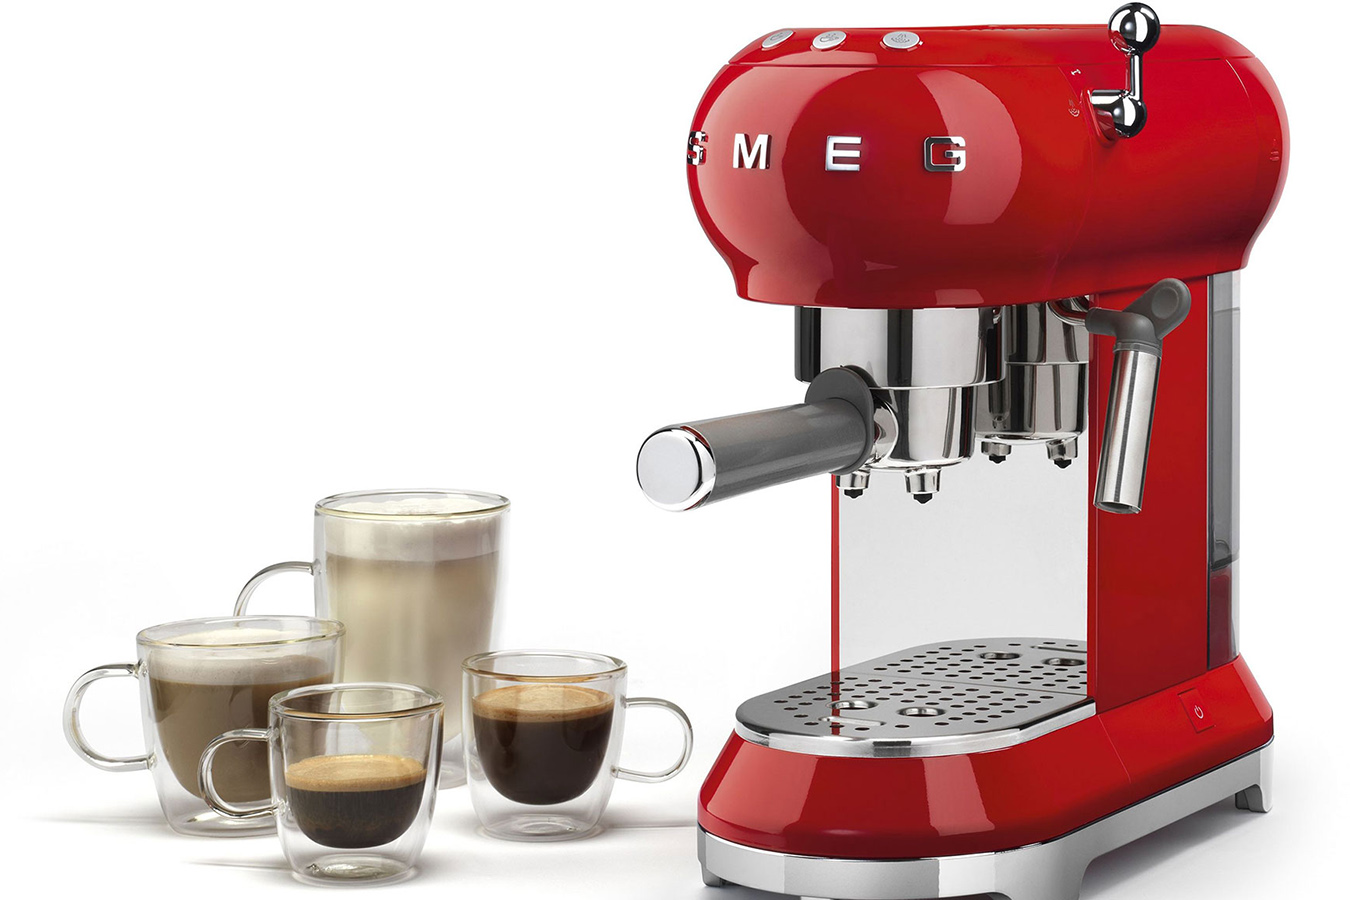 SMEG-ECF01-Coffee-machine.